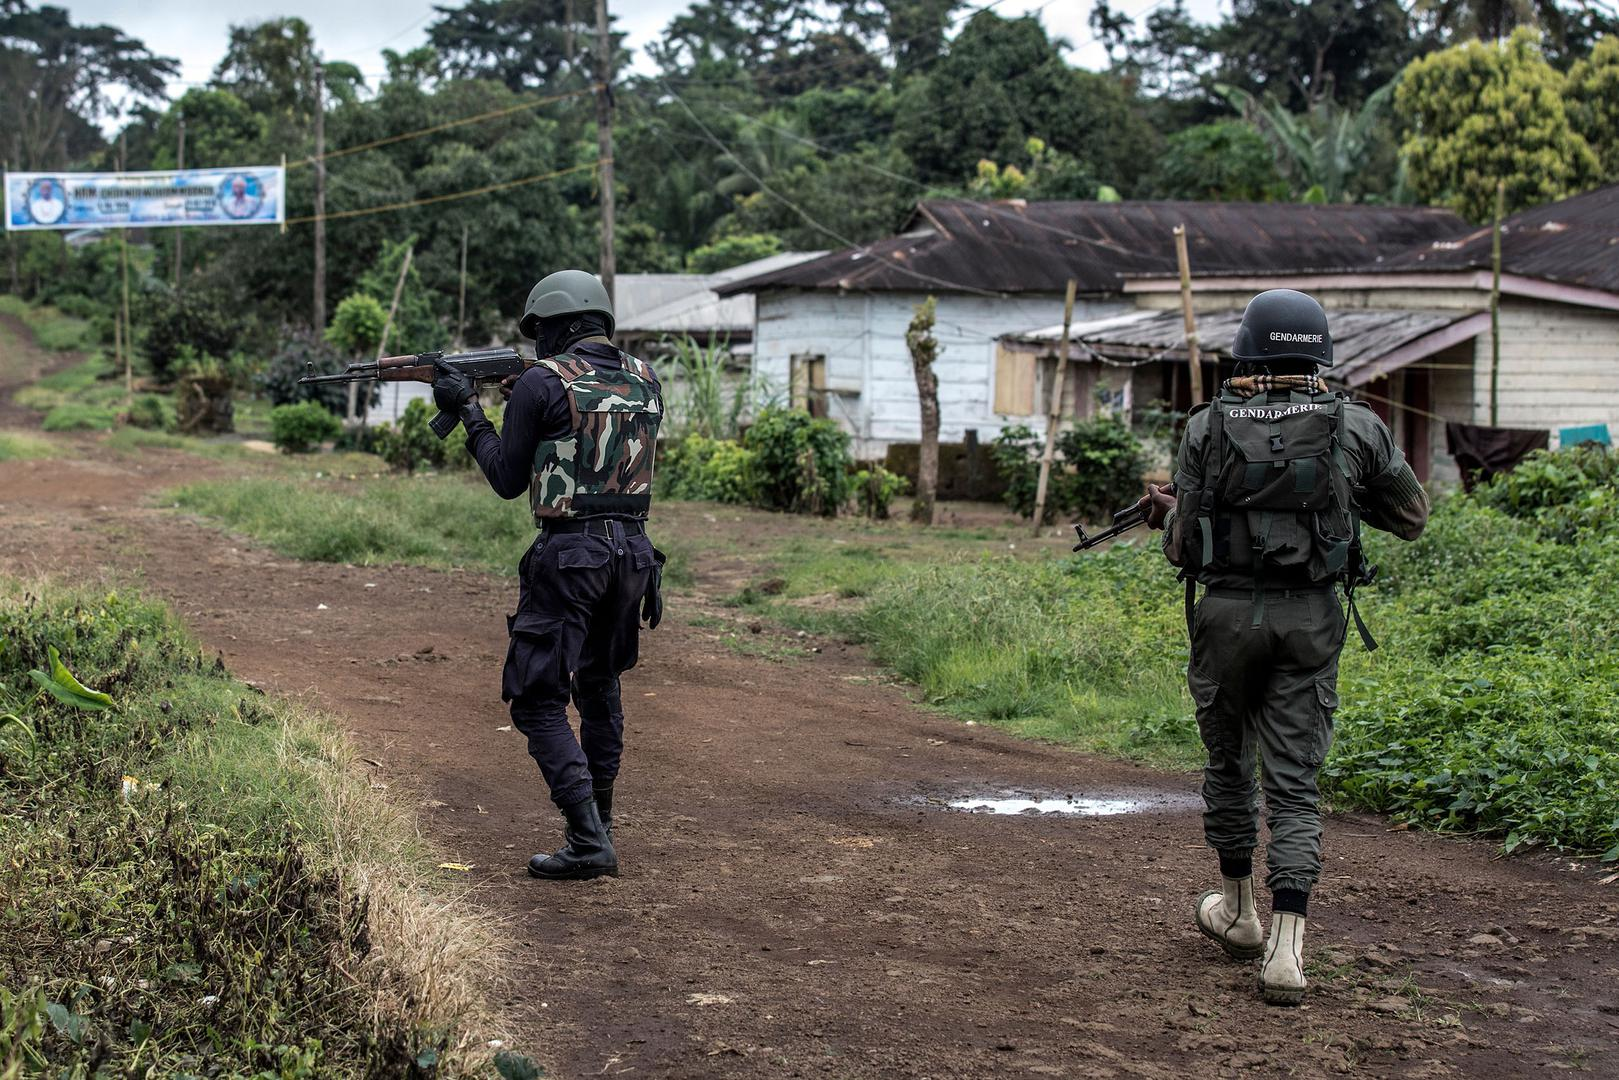 Security forces patrolling Muyuka, a town in the South West Region of Cameroon, as they try to rid the area of separatist fighters